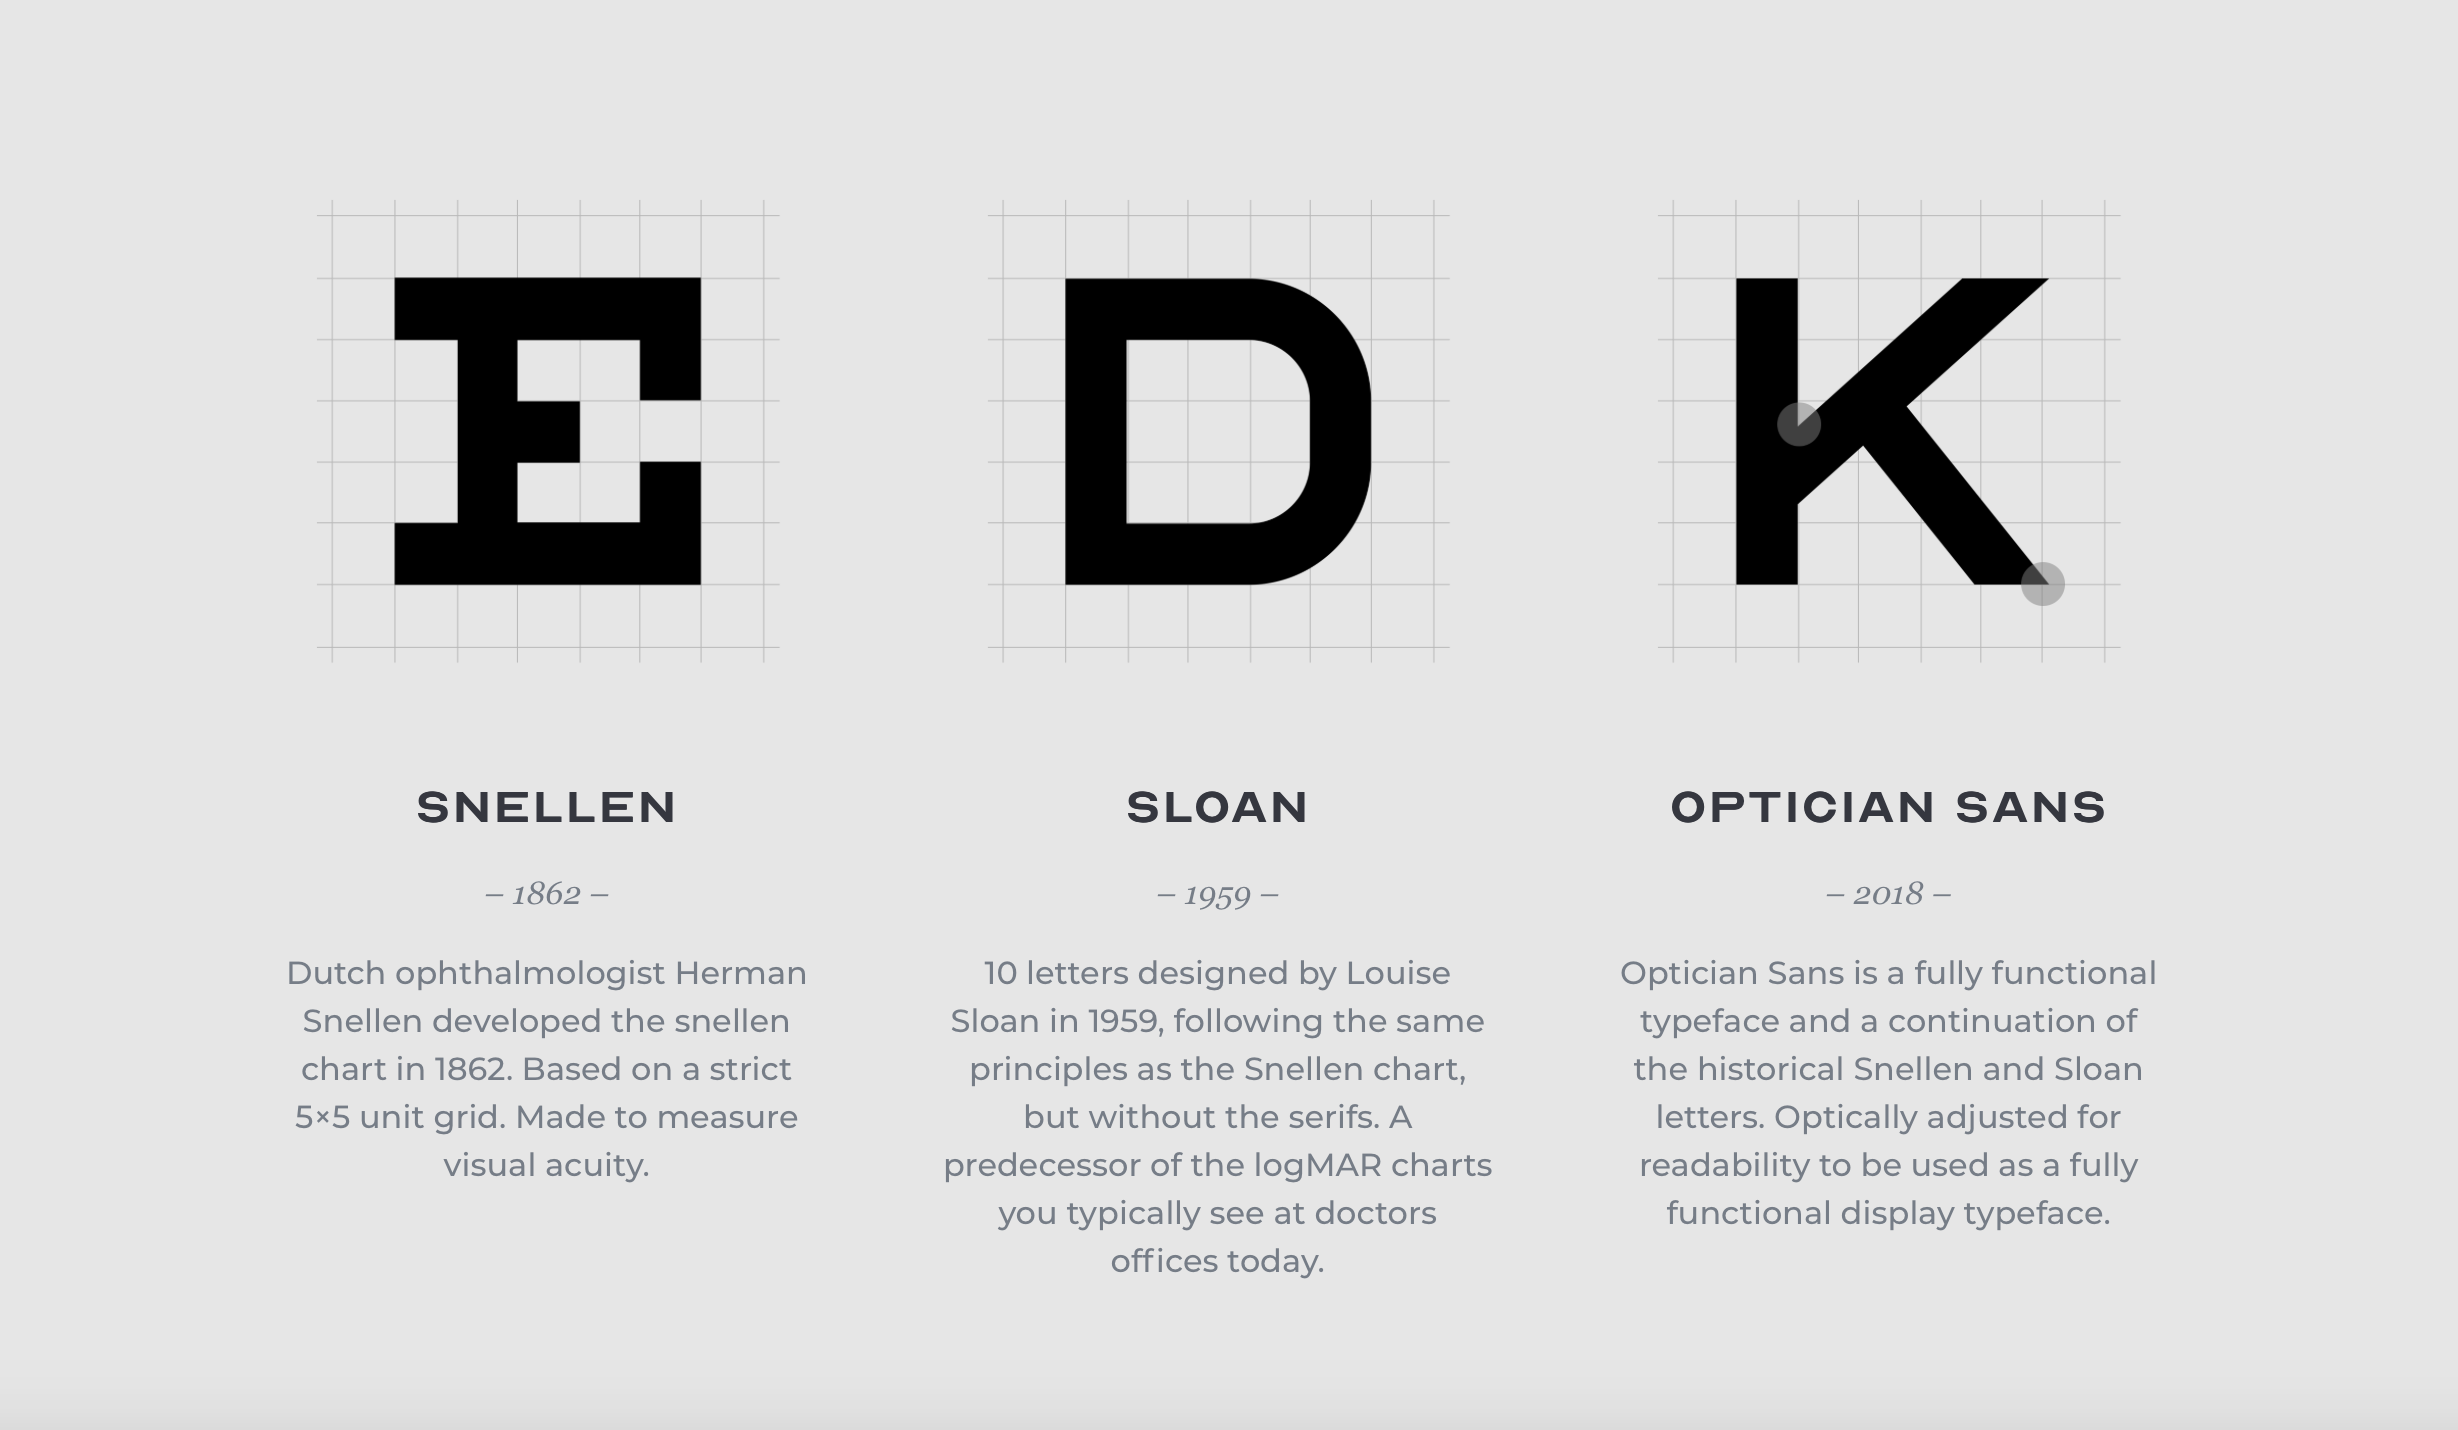 Snellen chart was developed in 1862 to measure visual acuity. Sloan chart was developed in 1952, with the same proportions, but without serifs. Optician Sans was developed in 2018 as fully functional facetype (originally for branding for the optical store in Norway).